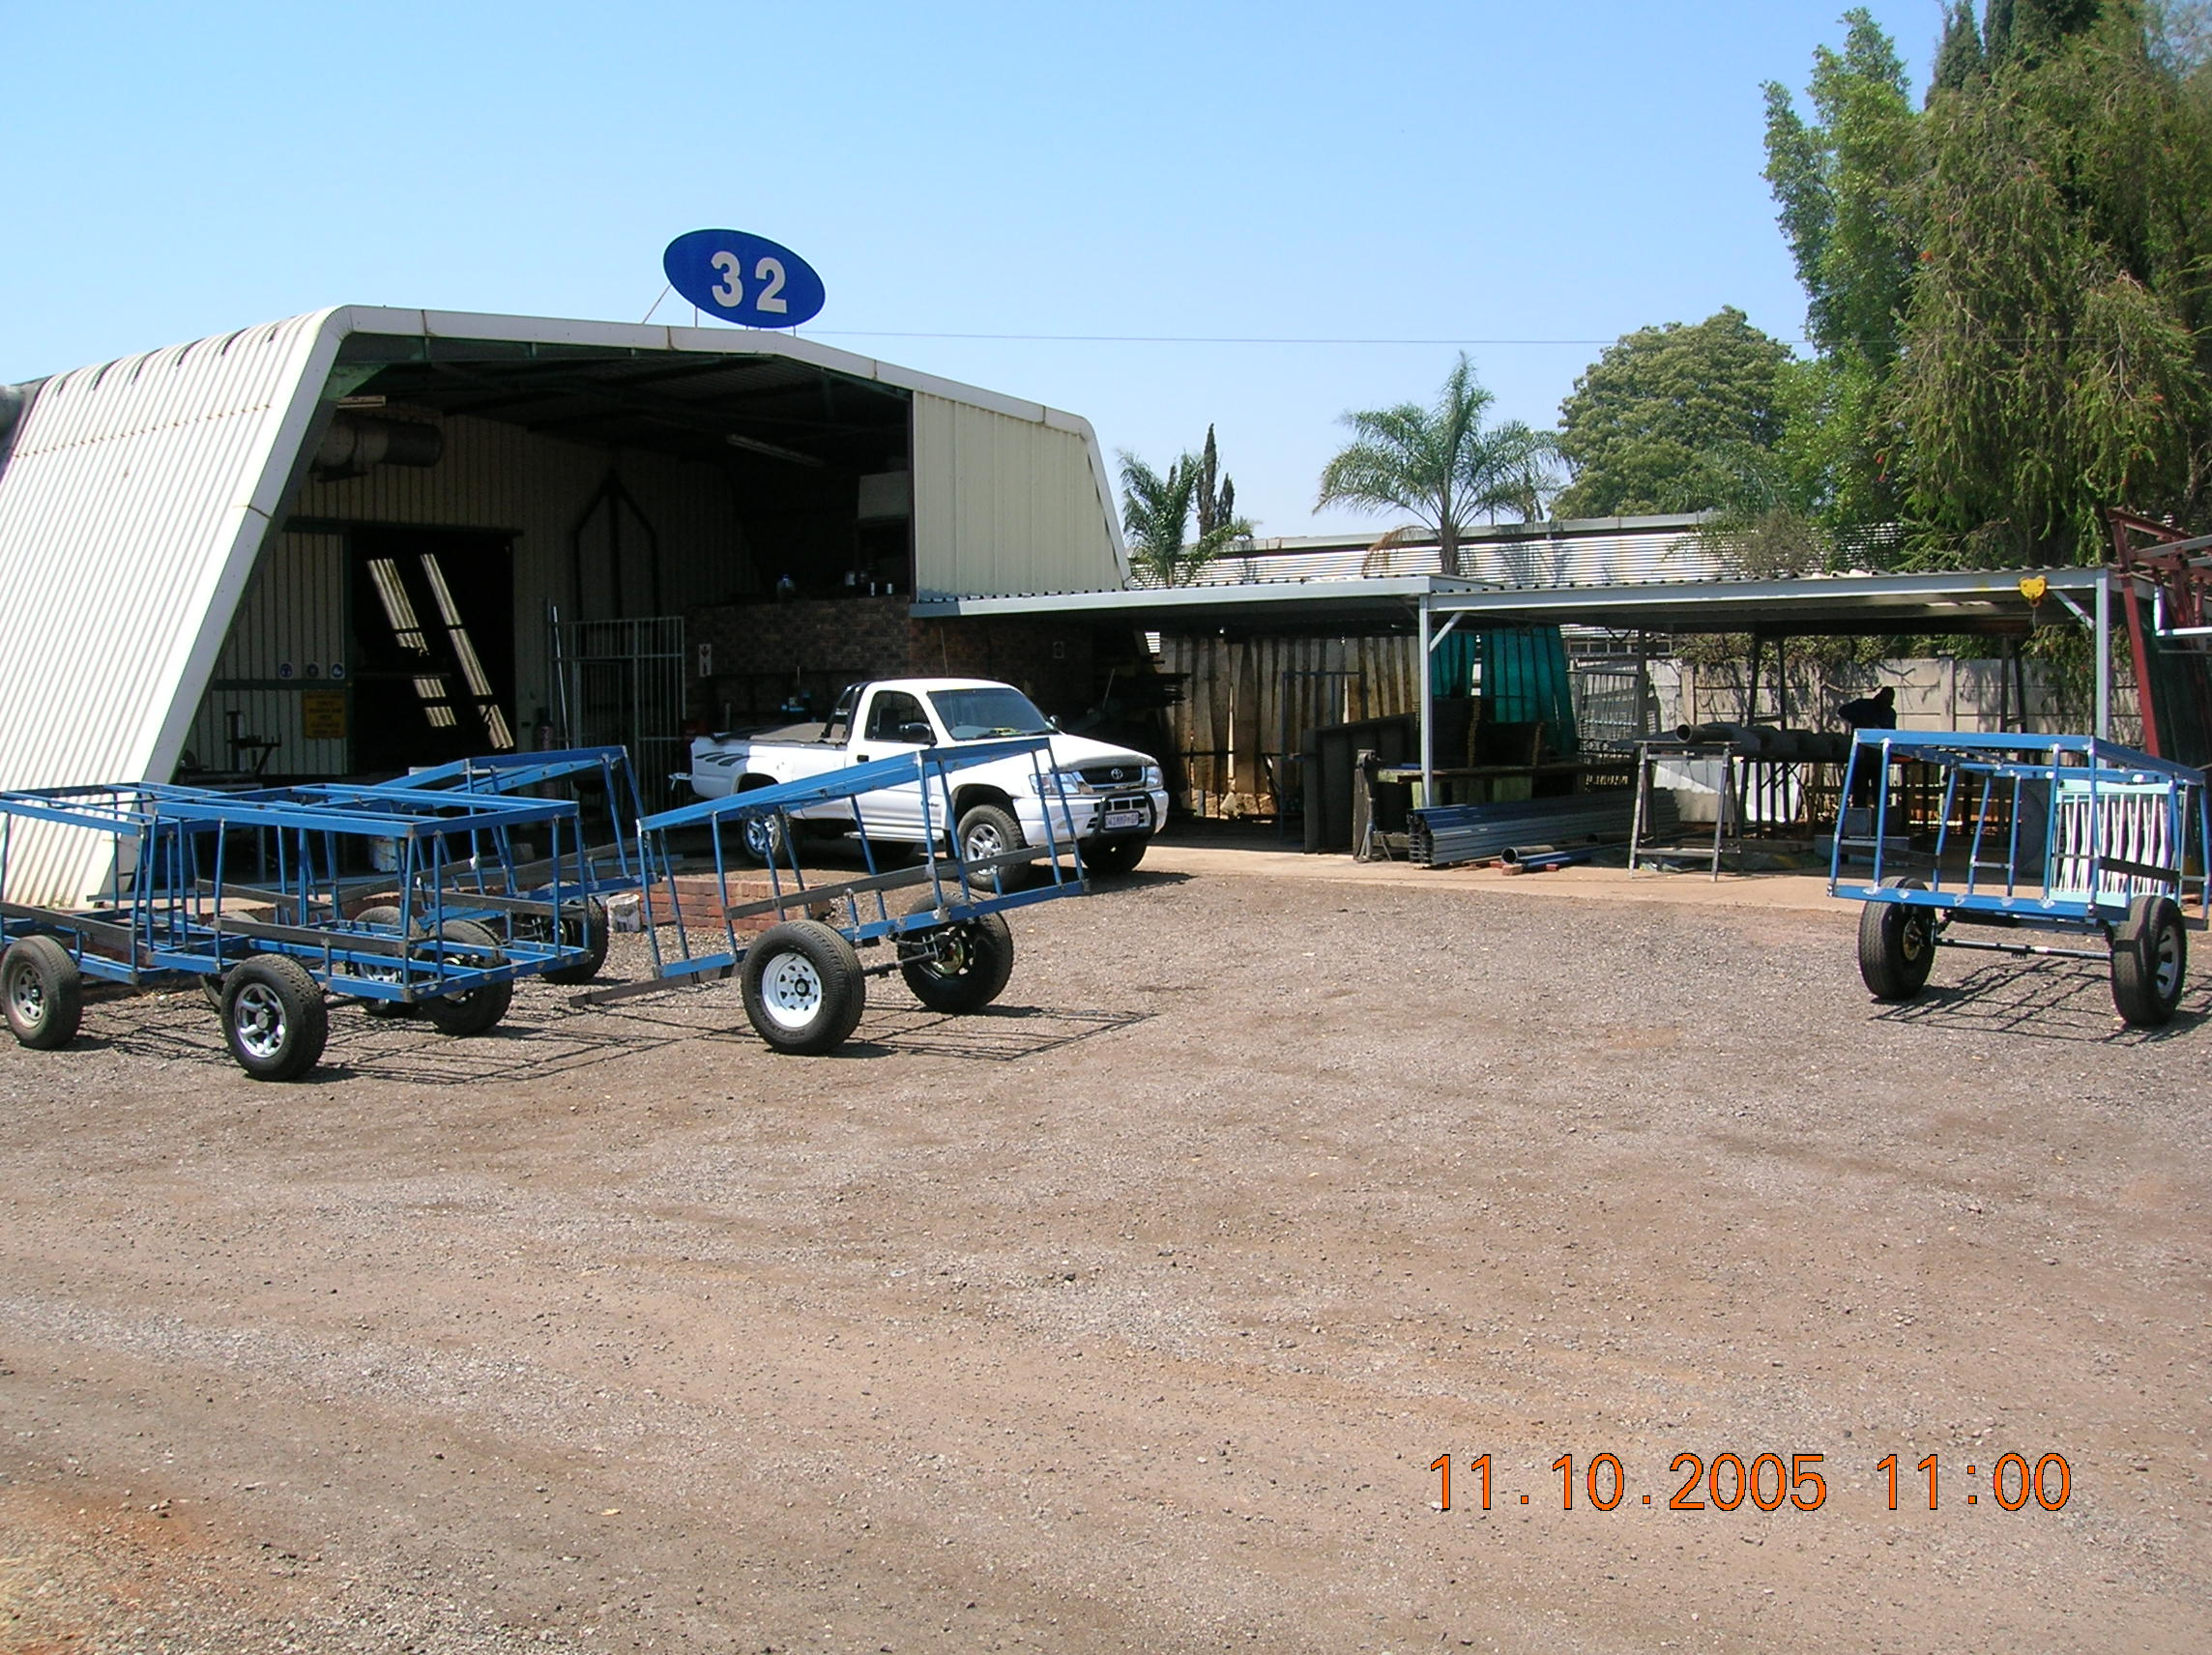 TRAILERS 092-1